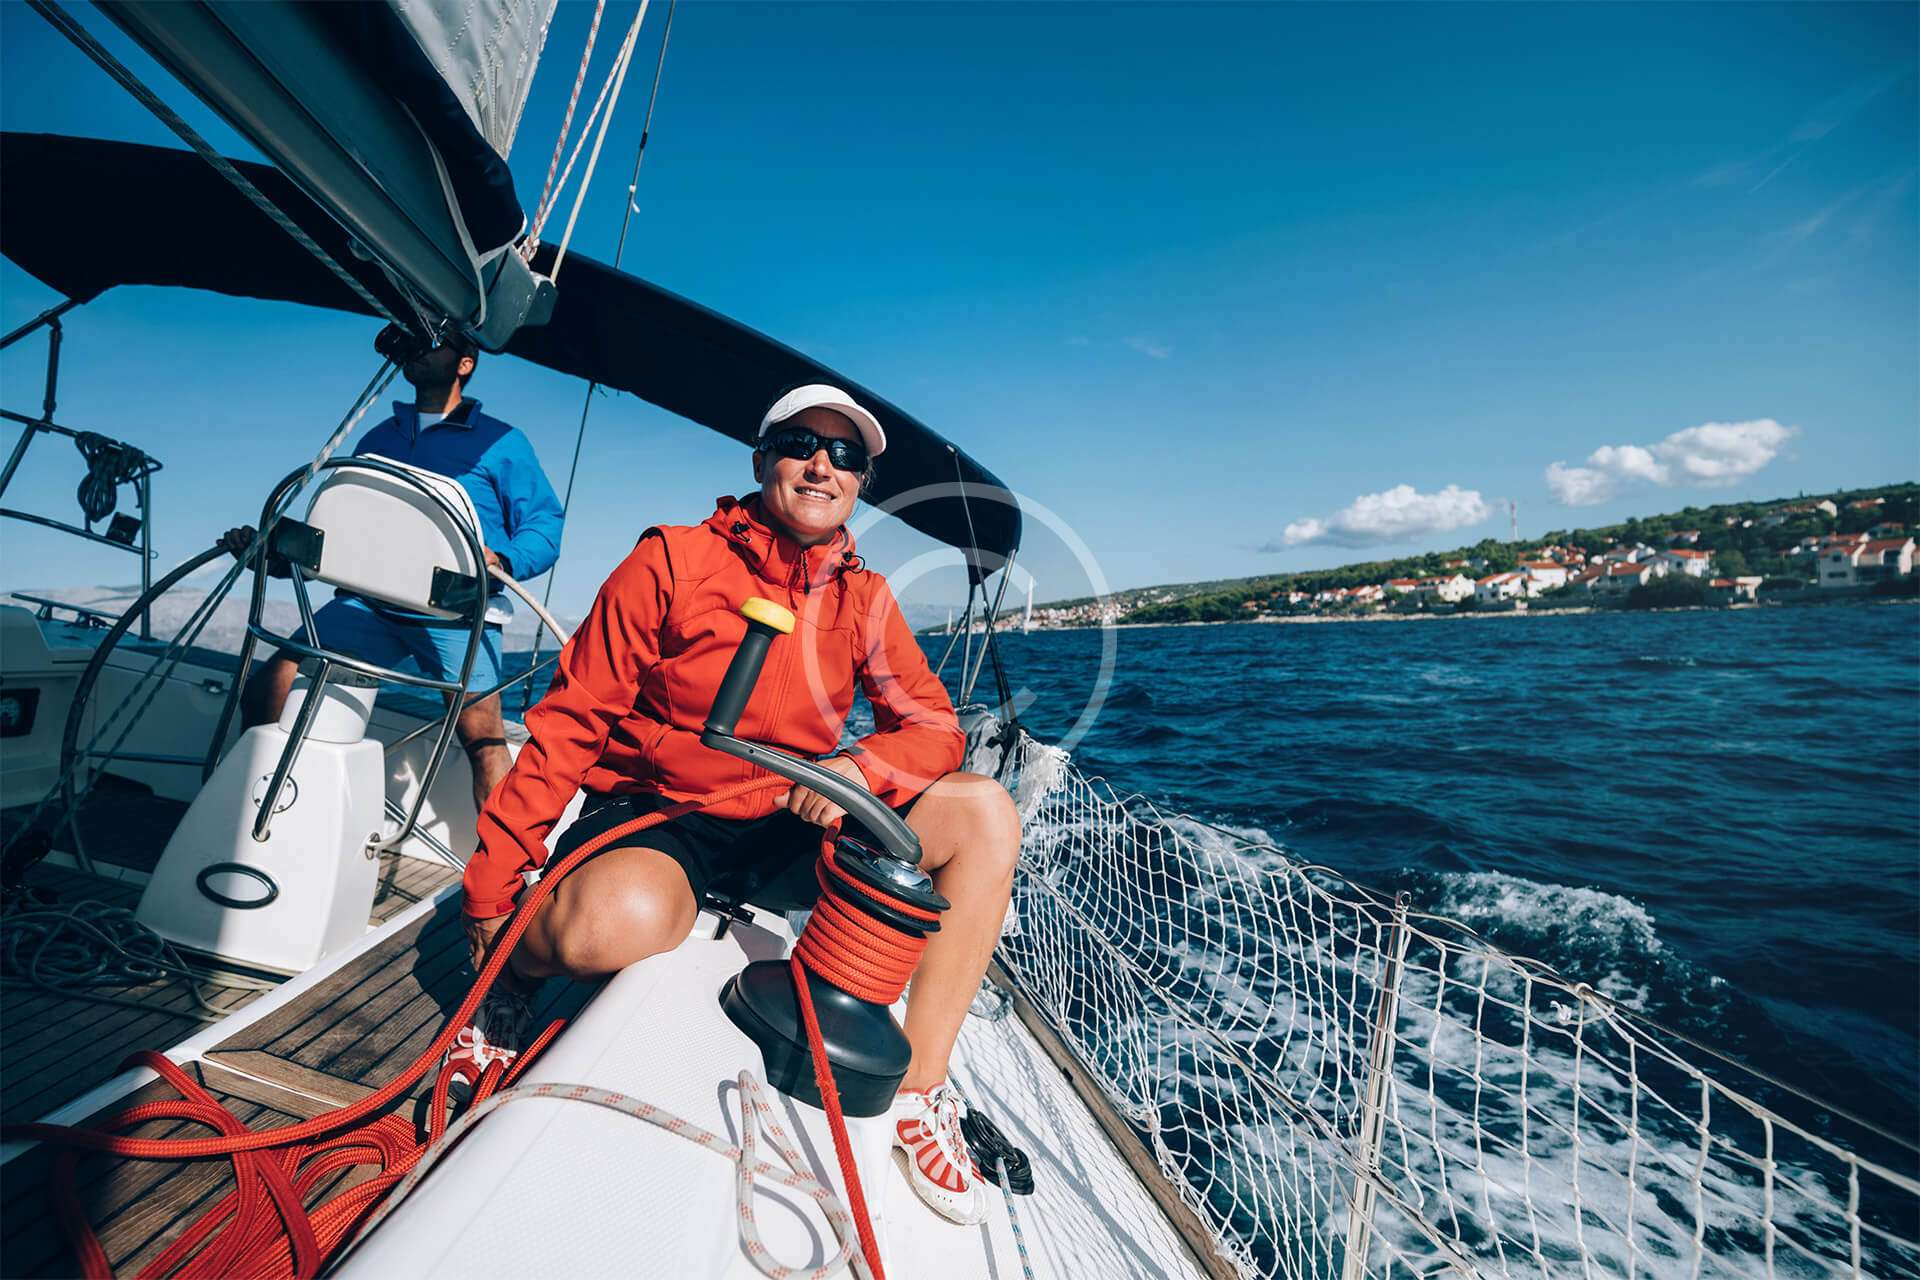 Yacht Rental in Australia: Top 5 Locations to Try First